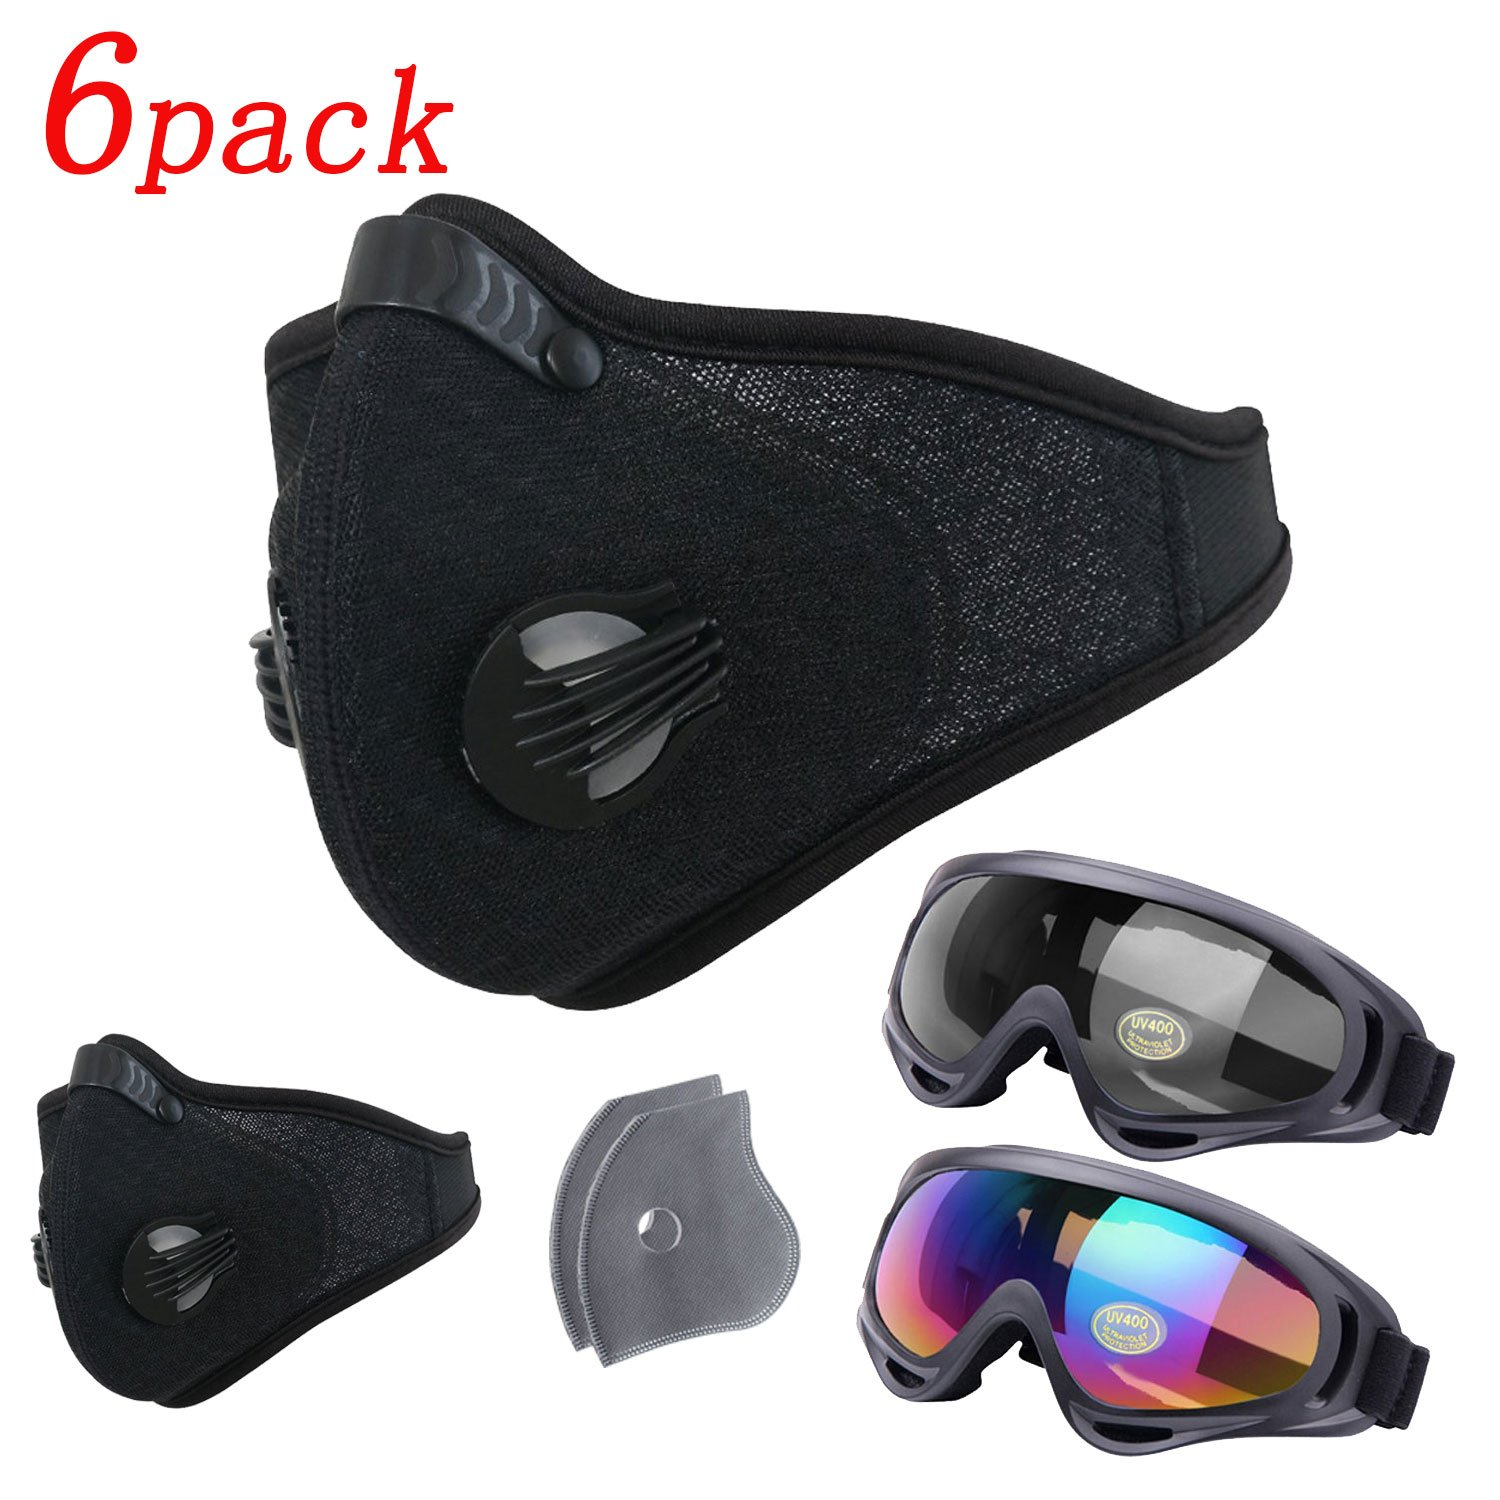 6Pack Activated Carbon Dustproof Mask – Include 2 Pack Safety Glasses 2 Pack Filter, Filtration Exhaust Gas Anti Pollen Allergy PM2.5 Dust Mask Air Filter for Running Cycling DIY Outdoor Activities